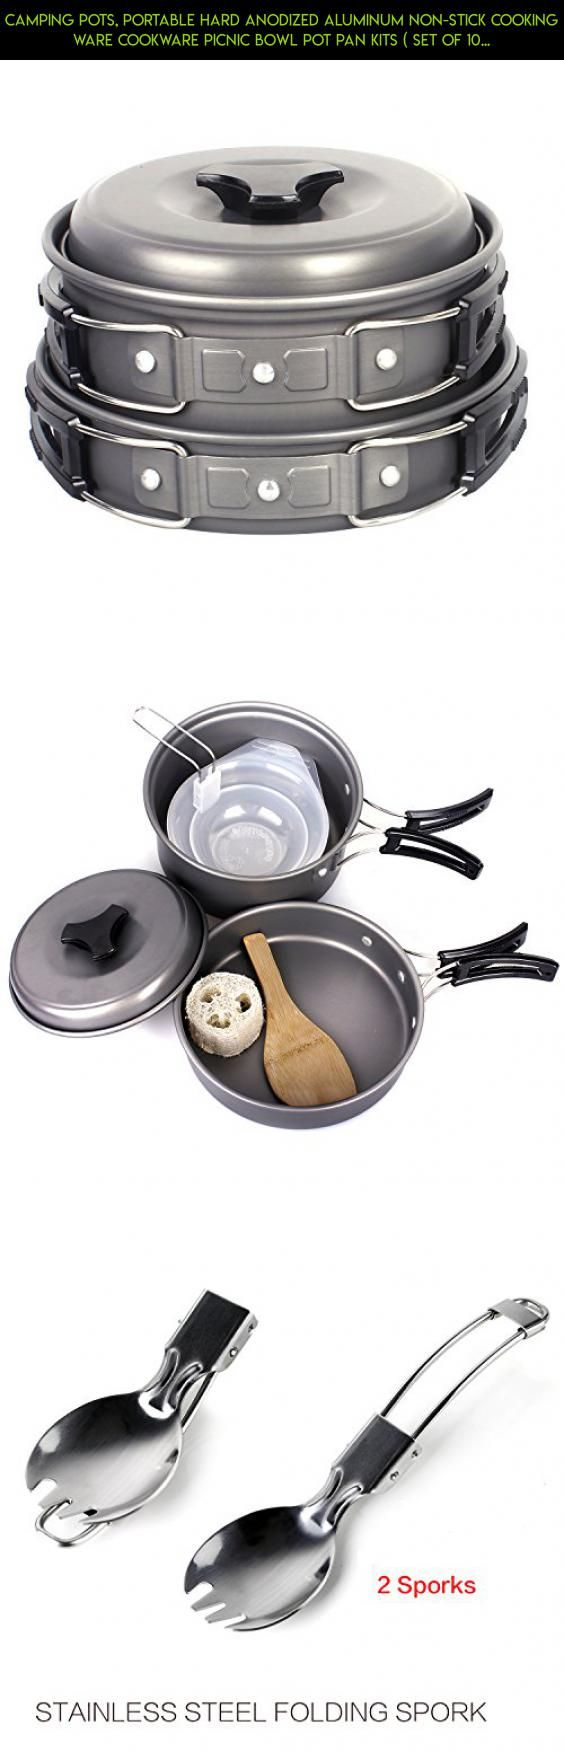 Camping Pots, Portable Hard Anodized Aluminum Non-stick Cooking Ware Cookware Picnic Bowl Pot Pan Kits ( Set of 10 ) #kit #products #plans #gadgets #outdoor #technology #parts #racing #cooking #fpv #ware #tech #drone #shopping #camera